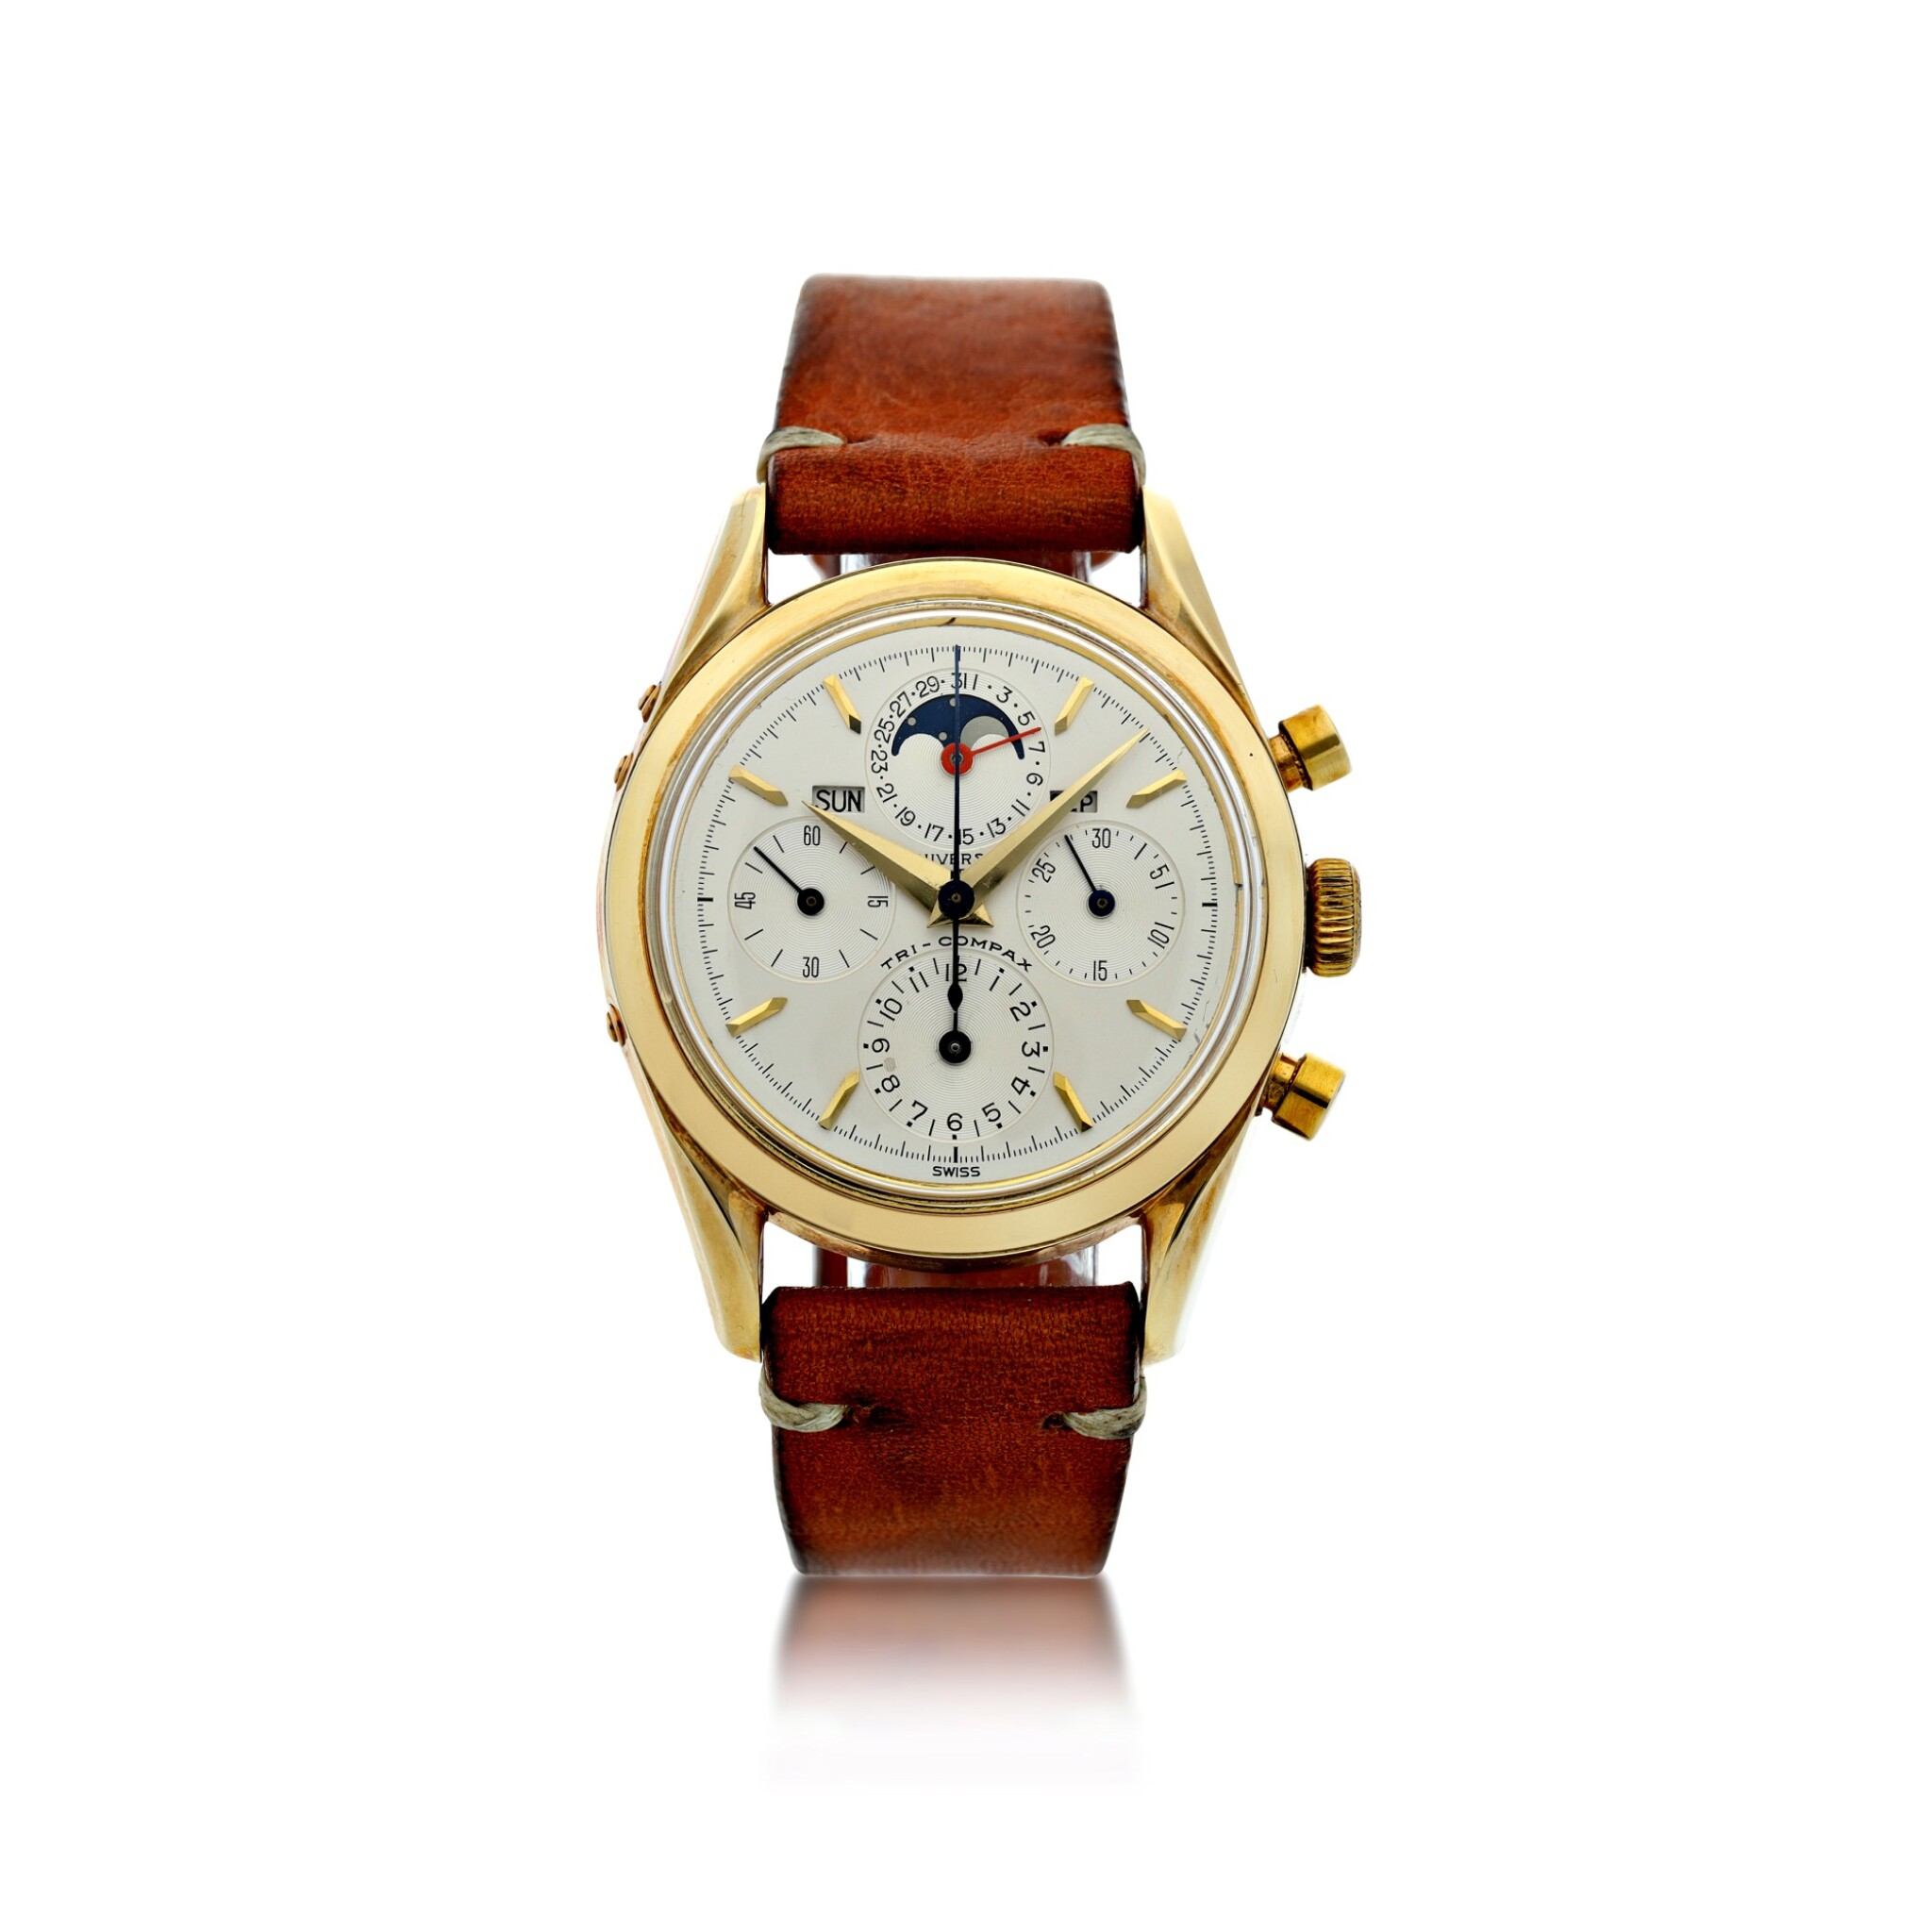 View full screen - View 1 of Lot 14. REFERENCE 330.194 TRI COMPAX A YELLOW GOLD TRIPLE CALENDAR CHRONOGRAPH WRISTWATCH WITH MOON PHASES, CIRCA 1955.